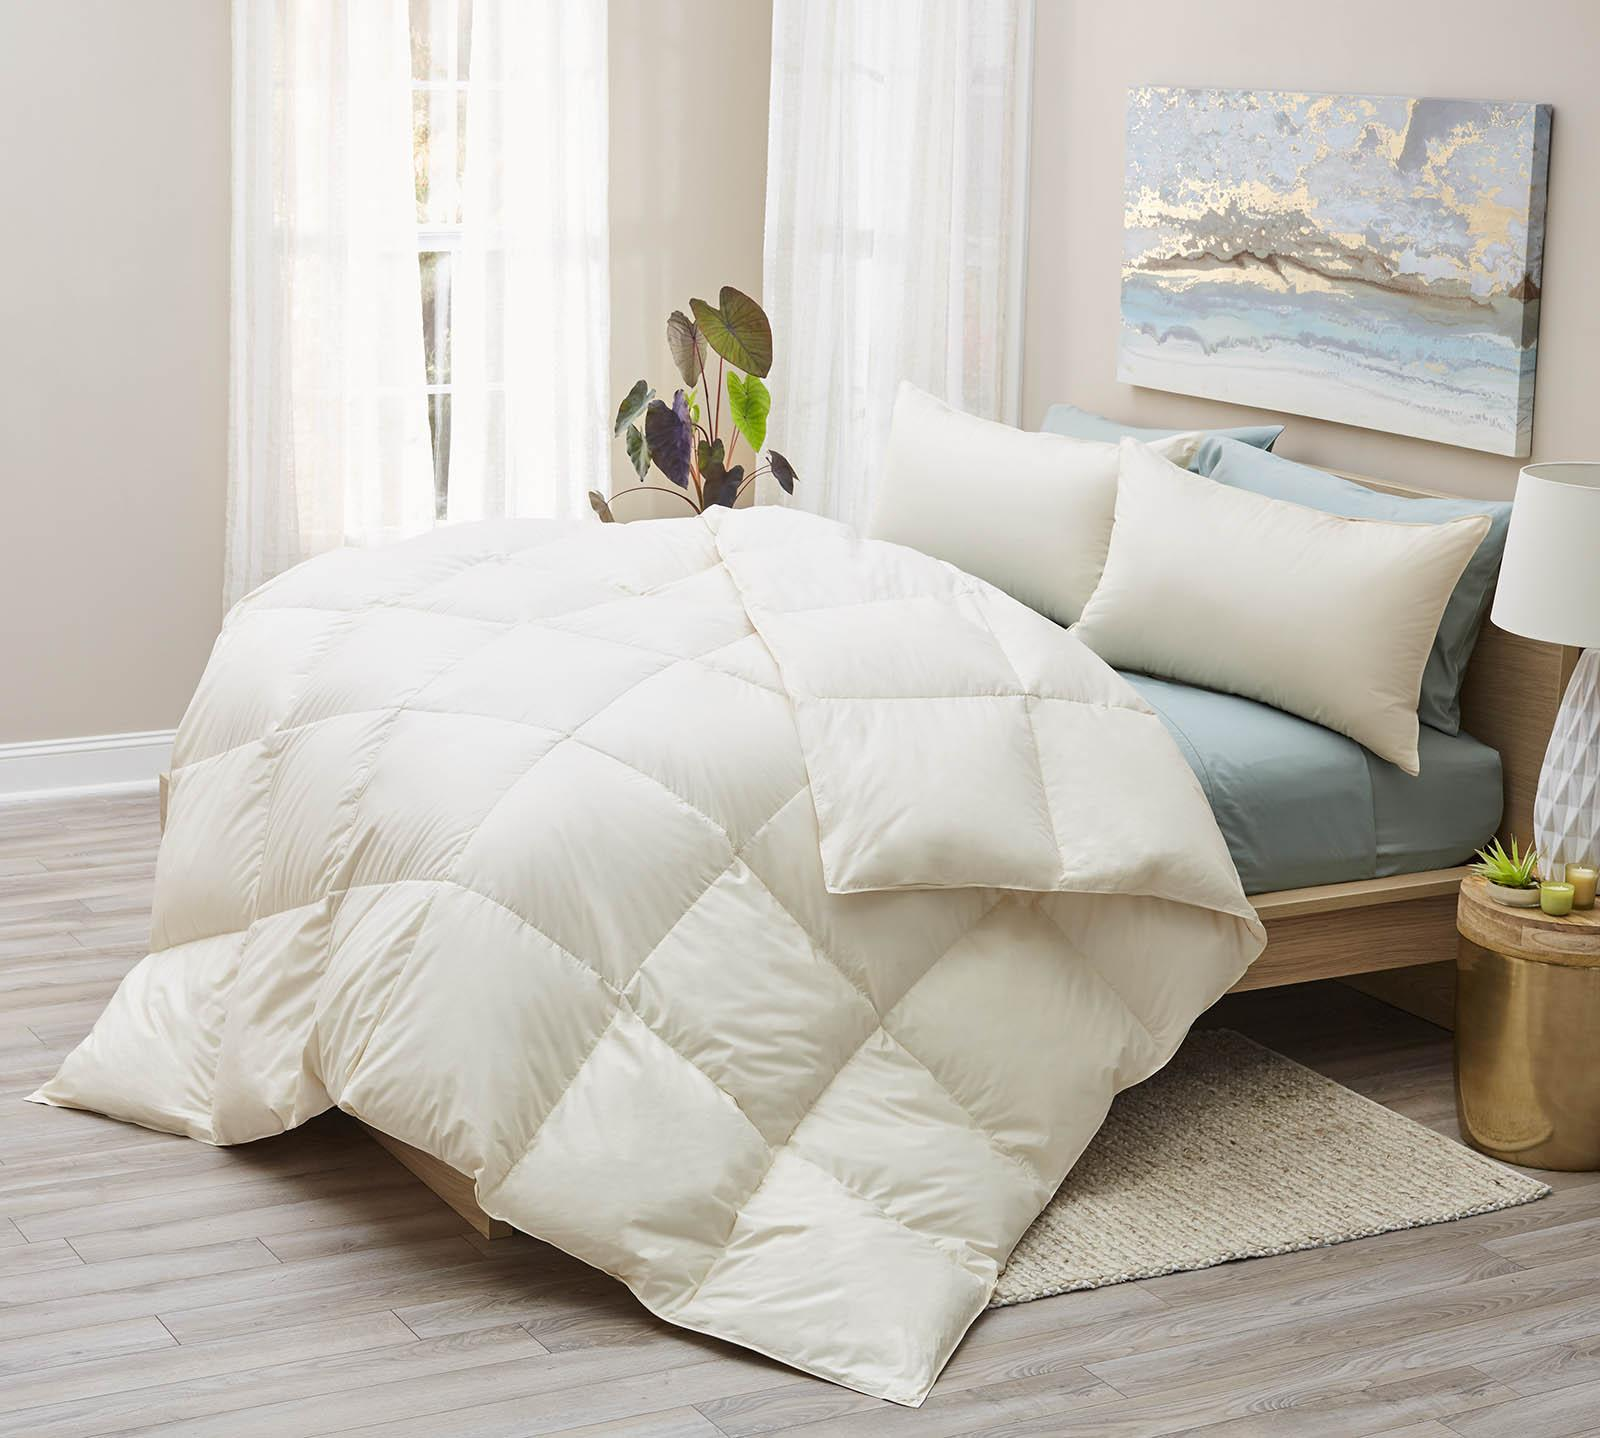 Lux Living Naturals Twin Organic All Season Down Comforter